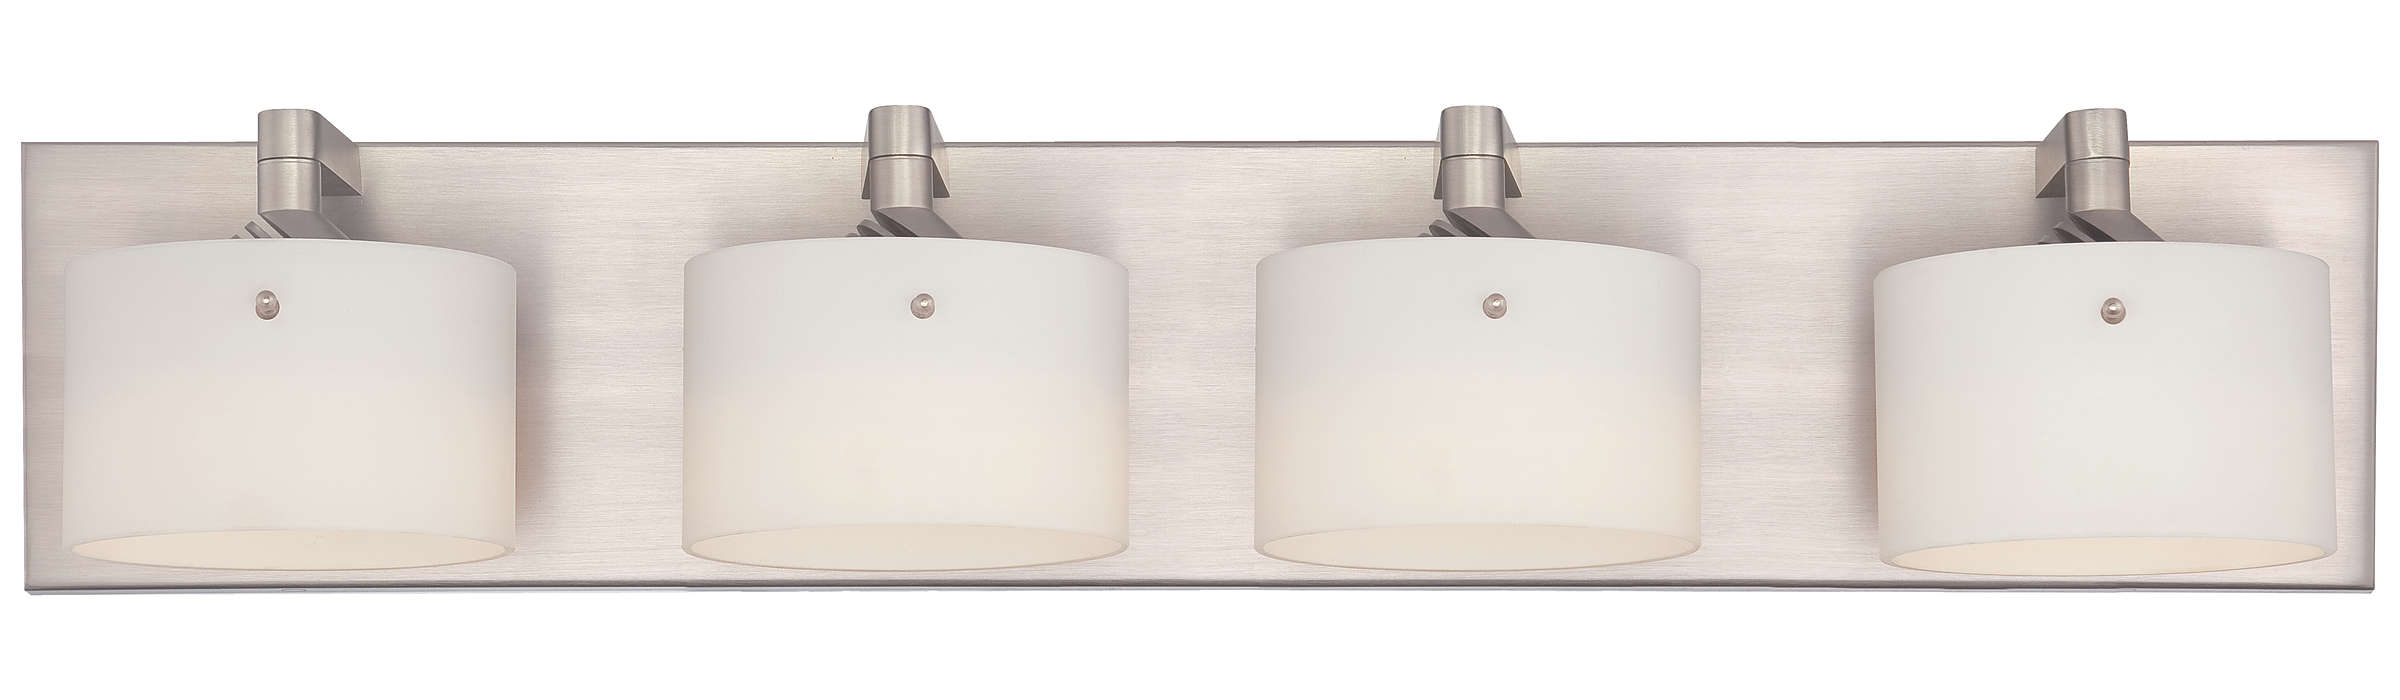 Yo-Yo 4-light LED Bath in Satin Nickel finish